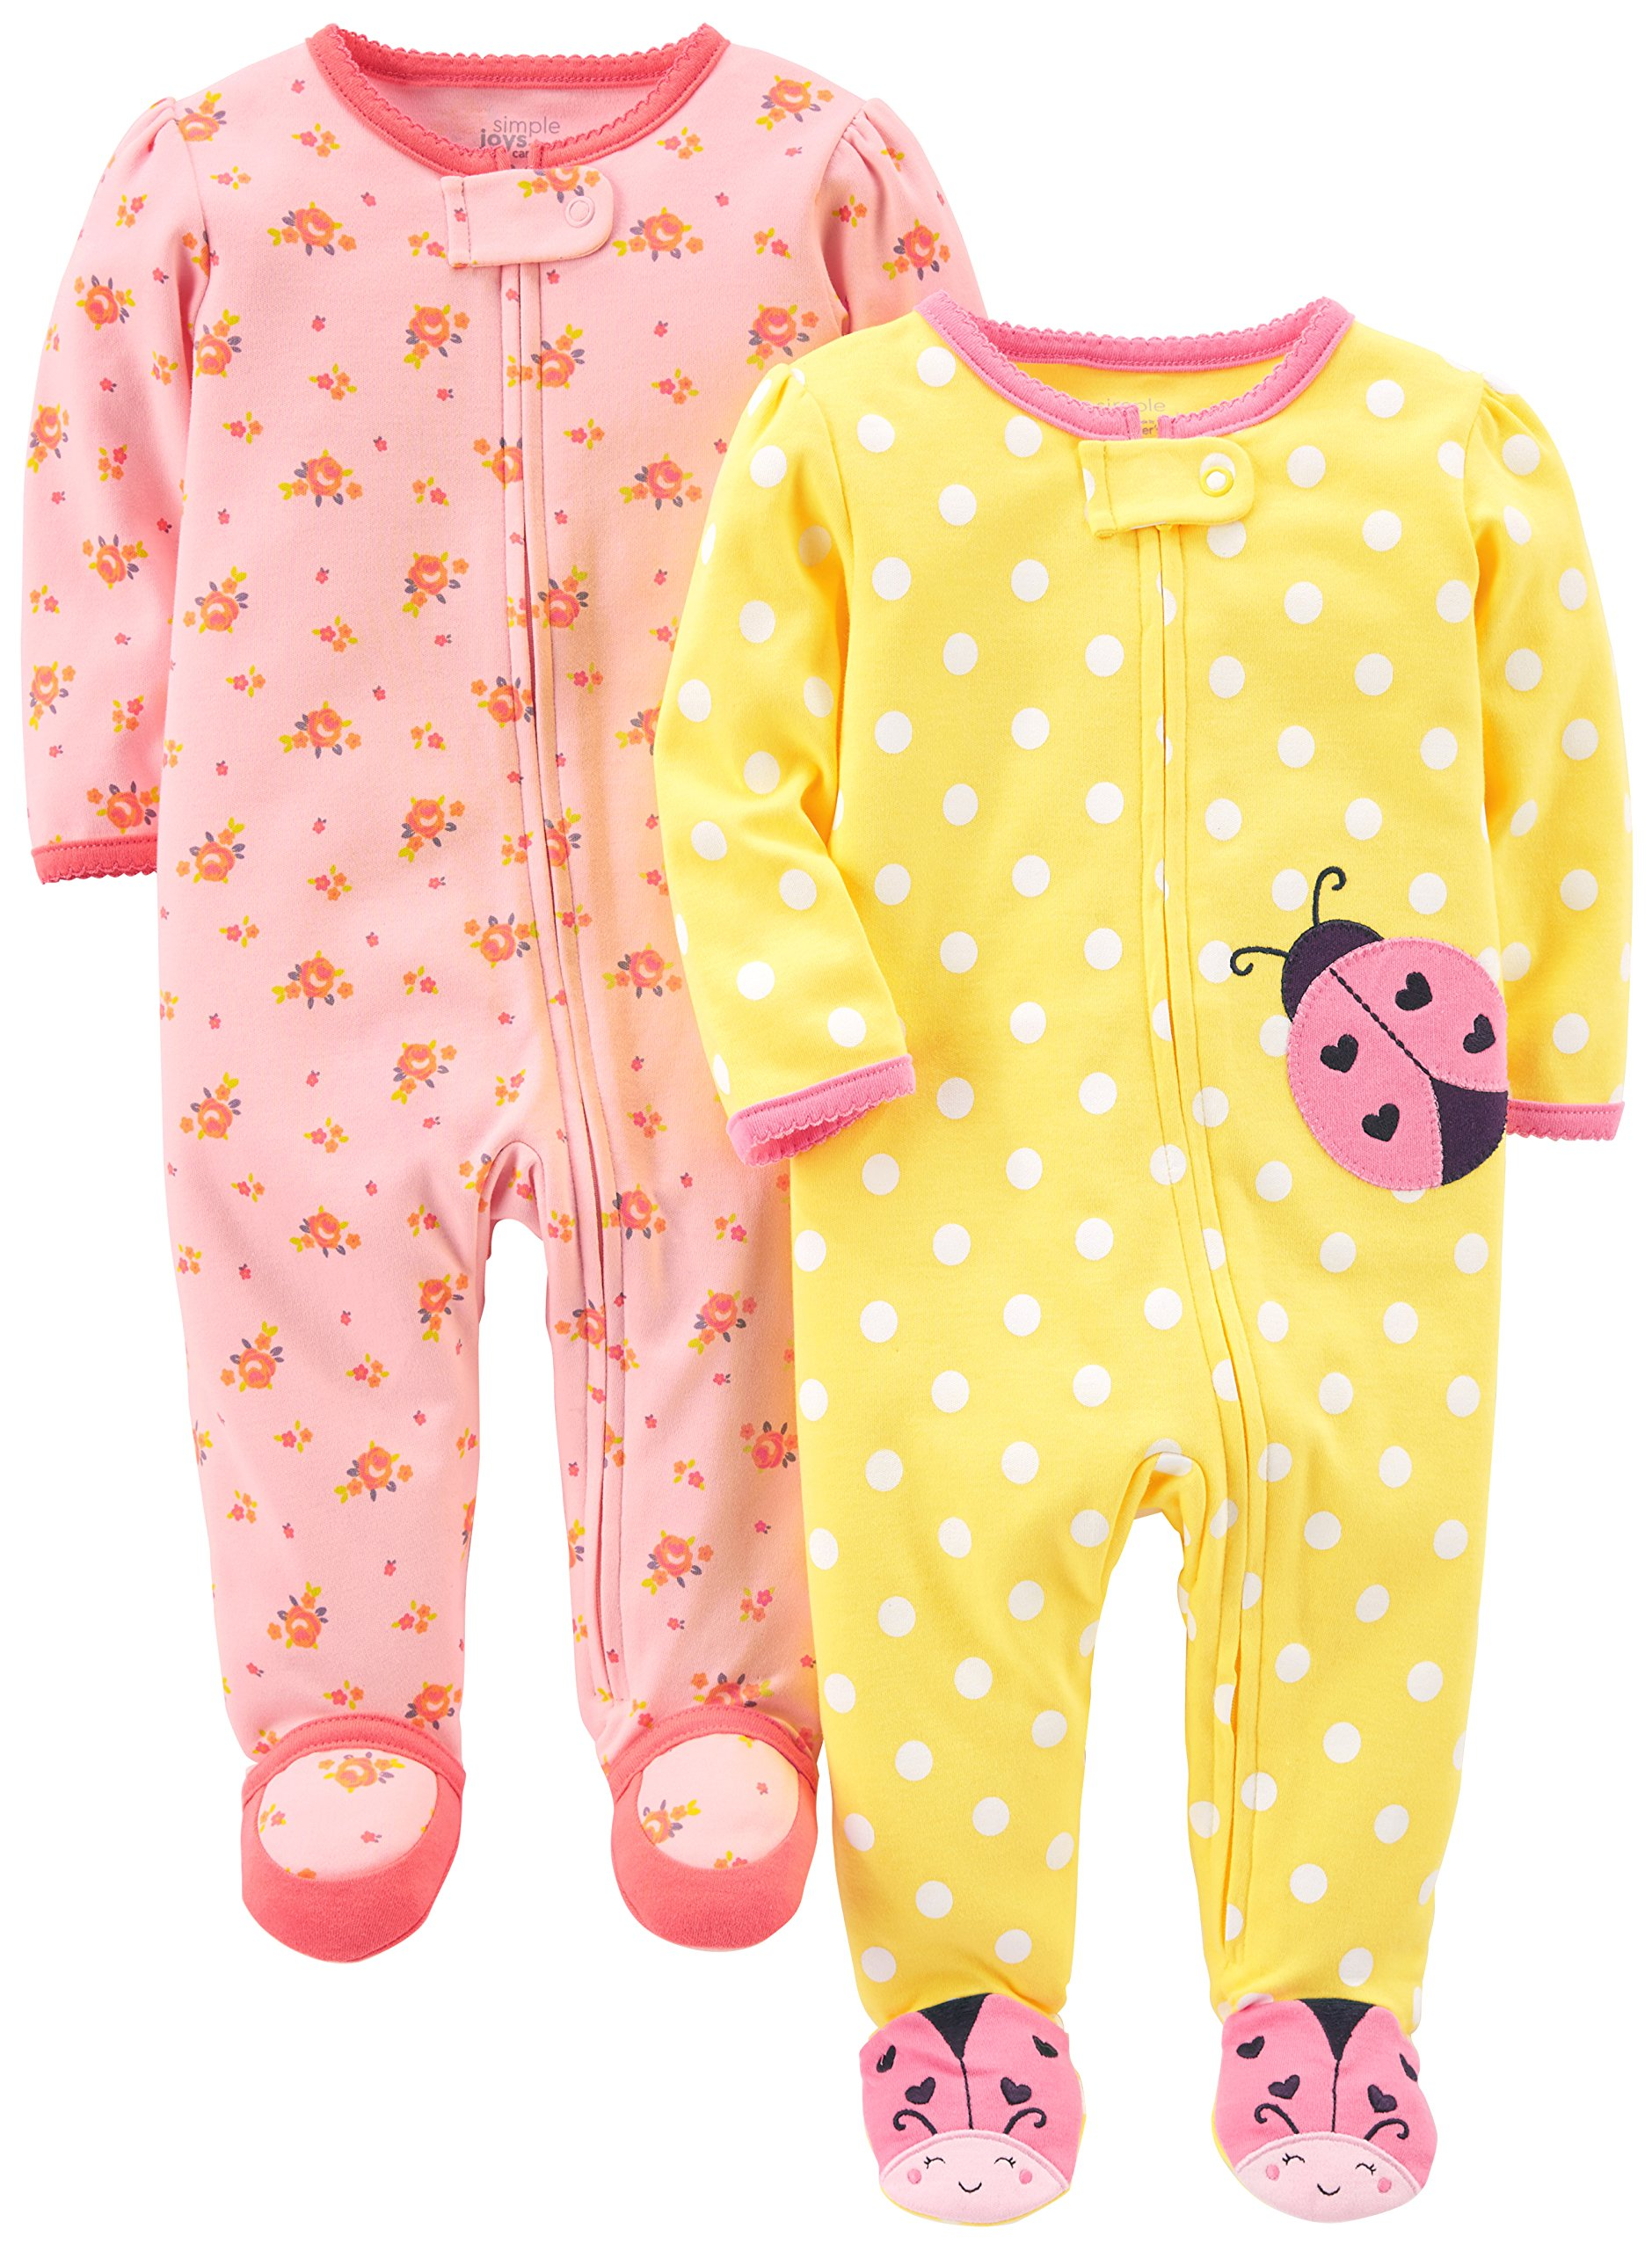 Simple Joys by Carter's Baby Girls' 2-Pack Cotton Footed Sleep and Play, Pink Floral/Ladybug, 0-3 Months